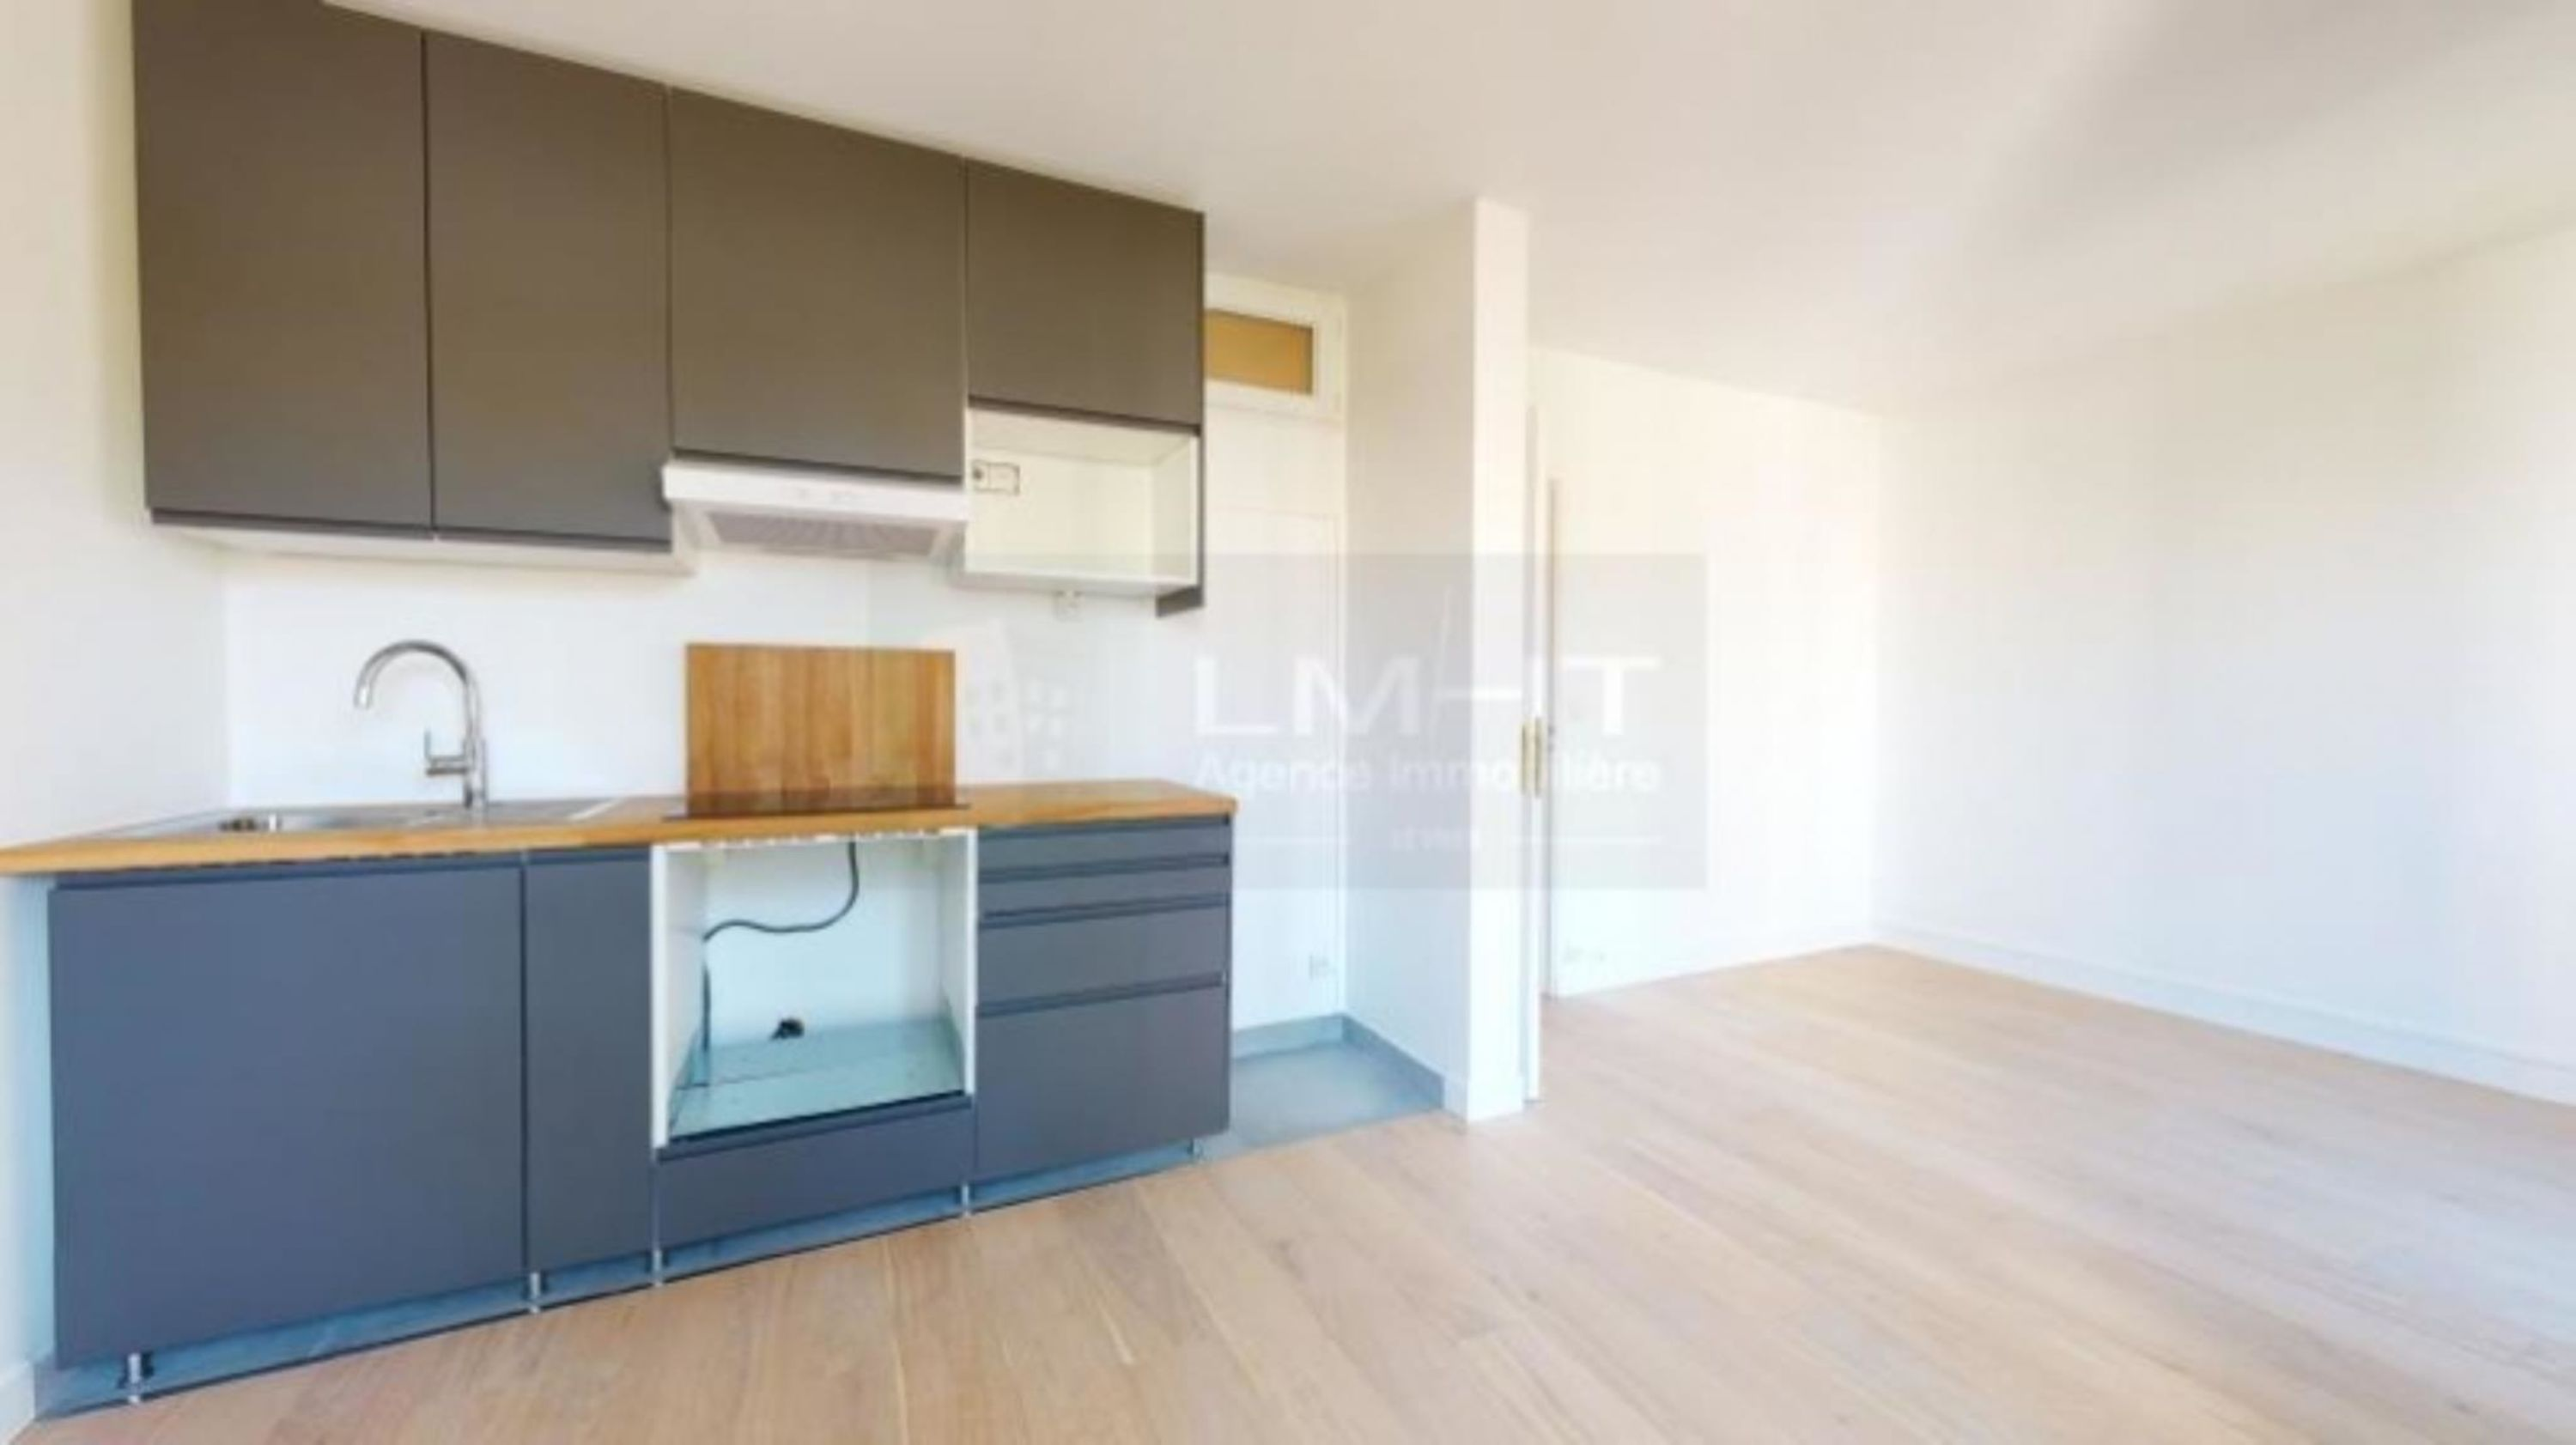 agence immobilière sevres 92 le chesnay 78 achat vente location appartement maison immobilier LMHT ANF DWZRKSBH